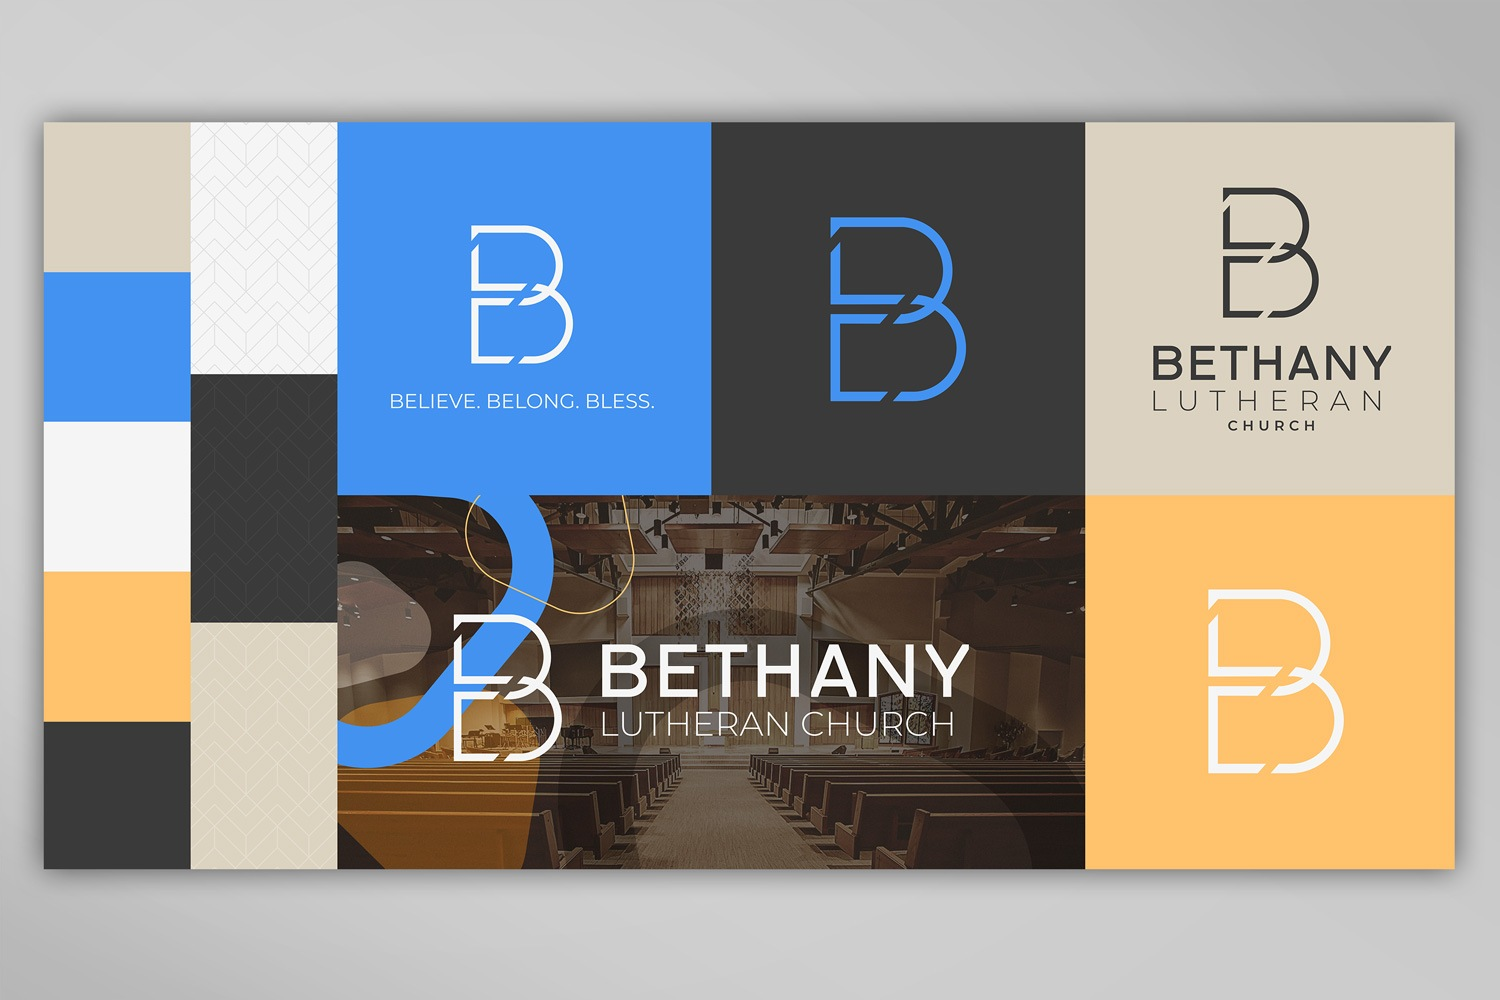 Best church logo images & logo samples for church branding guide